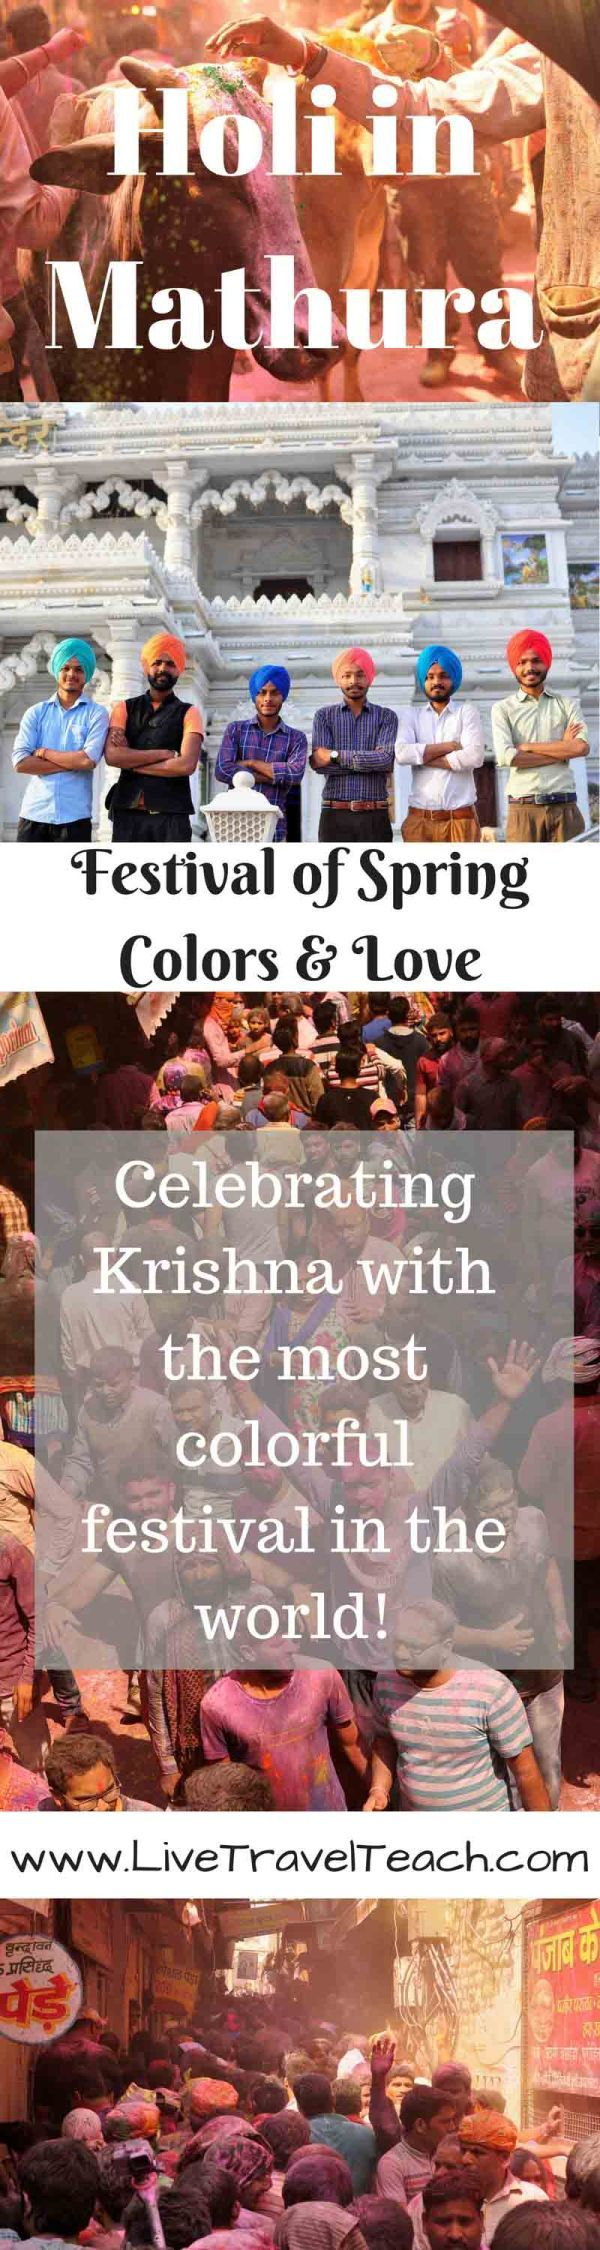 Best Place to Celebrate Holi – Mathura, India   Holi is a celebration of color & love in the name of Krishna.  The best destination to enjoy Holi is in Mathura, India where Krishna was born!  Its an amazing experience for any festival lover!